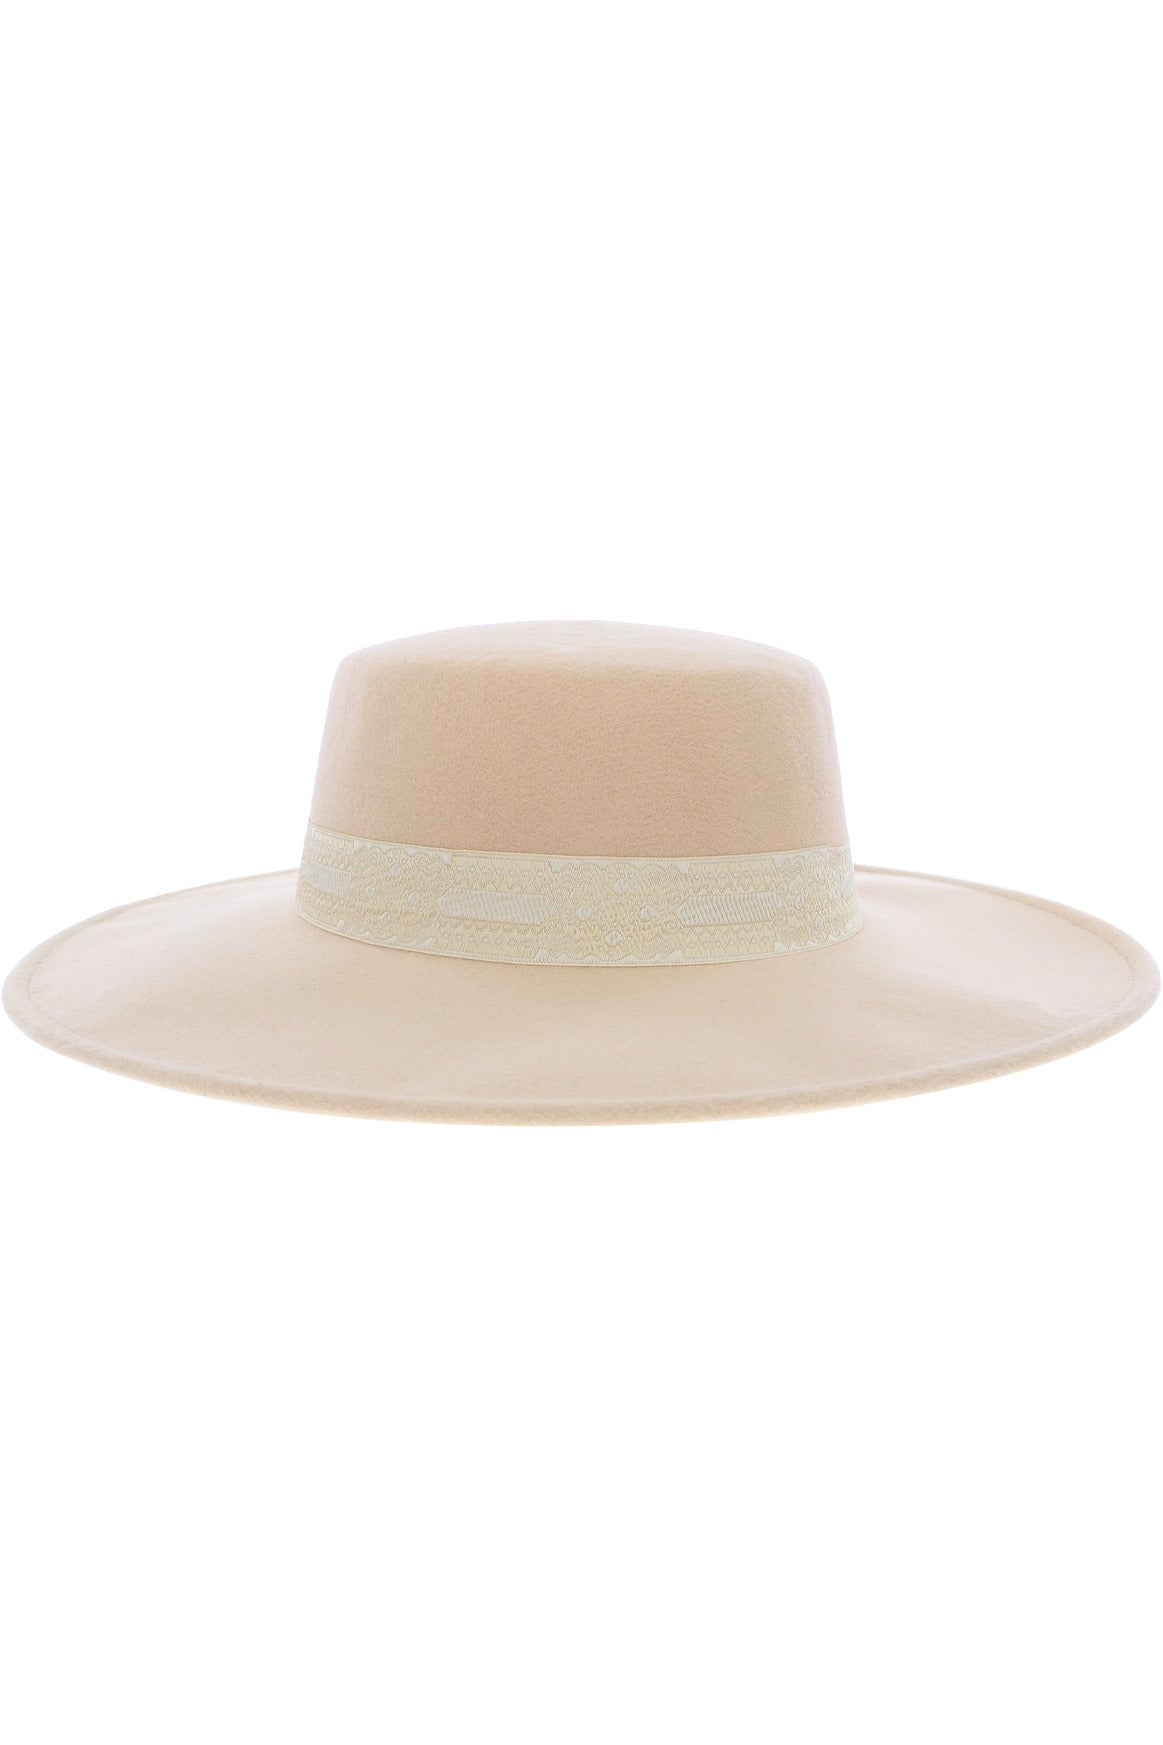 Amazing Lace Wide Brim Hat - Ivory